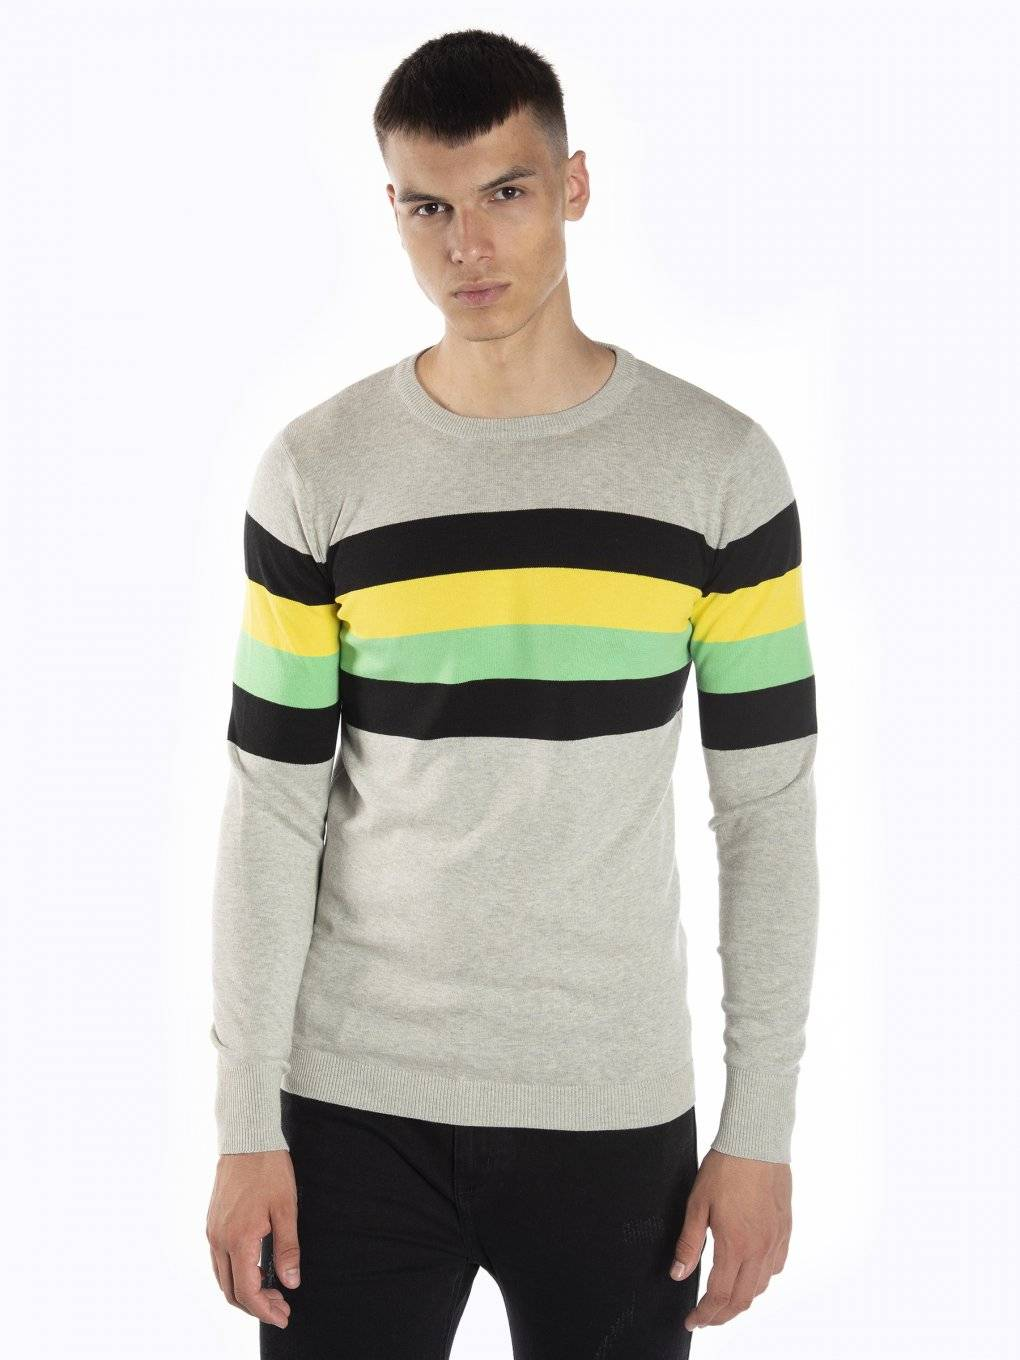 Jumper with colorful stripes